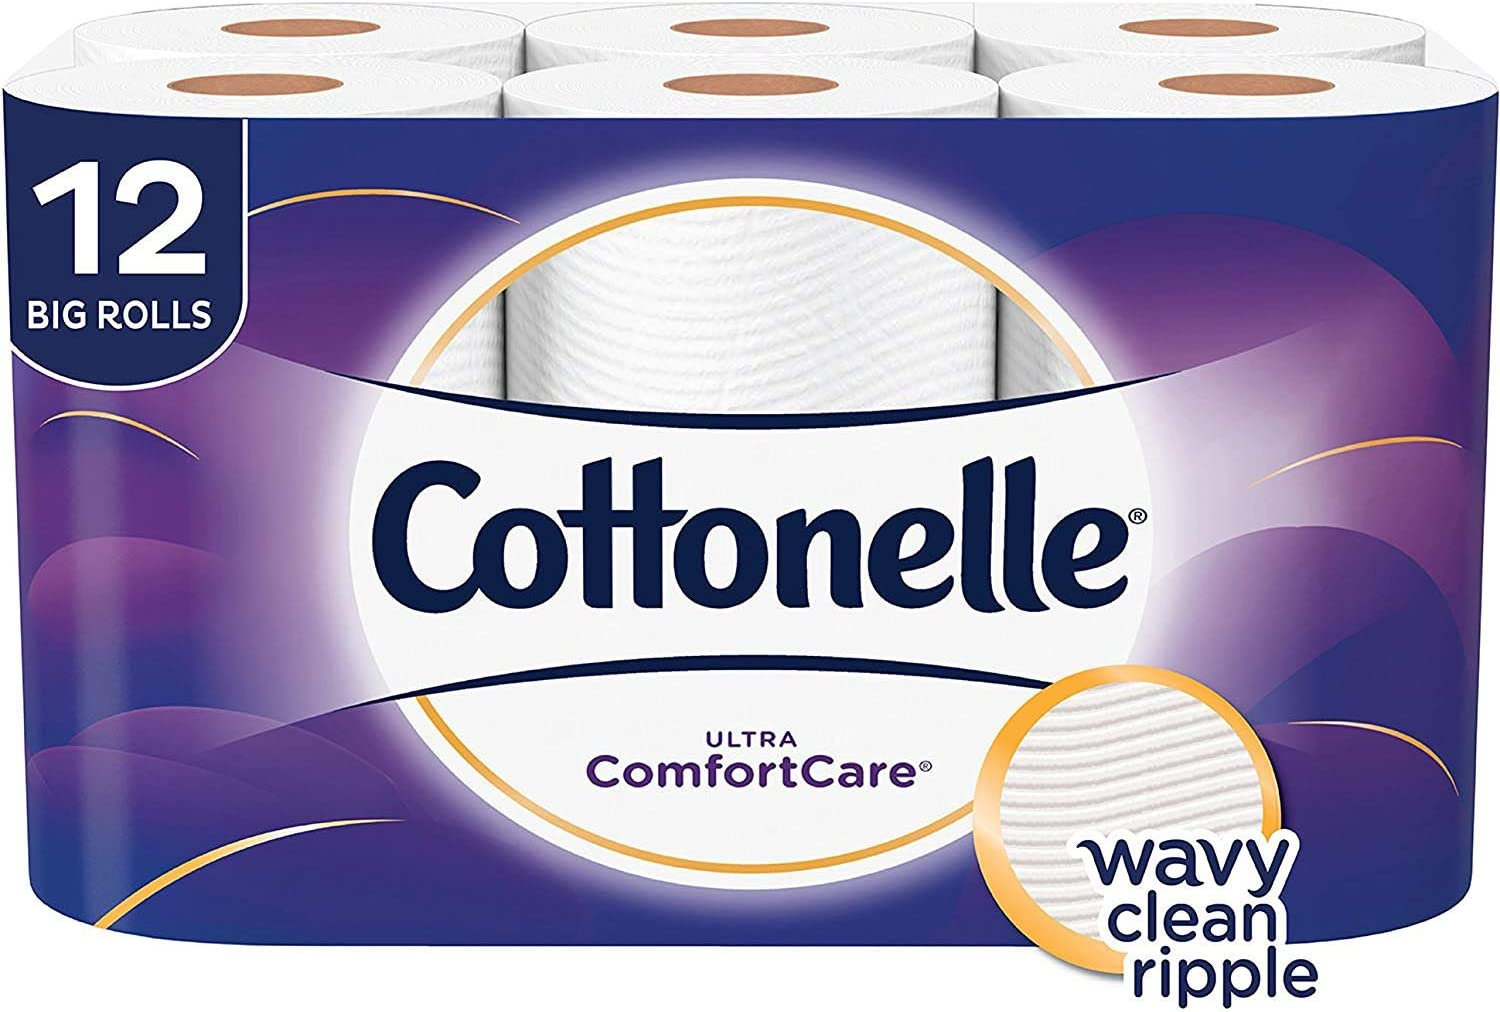 Cottonelle Ultra Comfort Care Toilet Paper, Big Roll, 12 Count : Health & Household